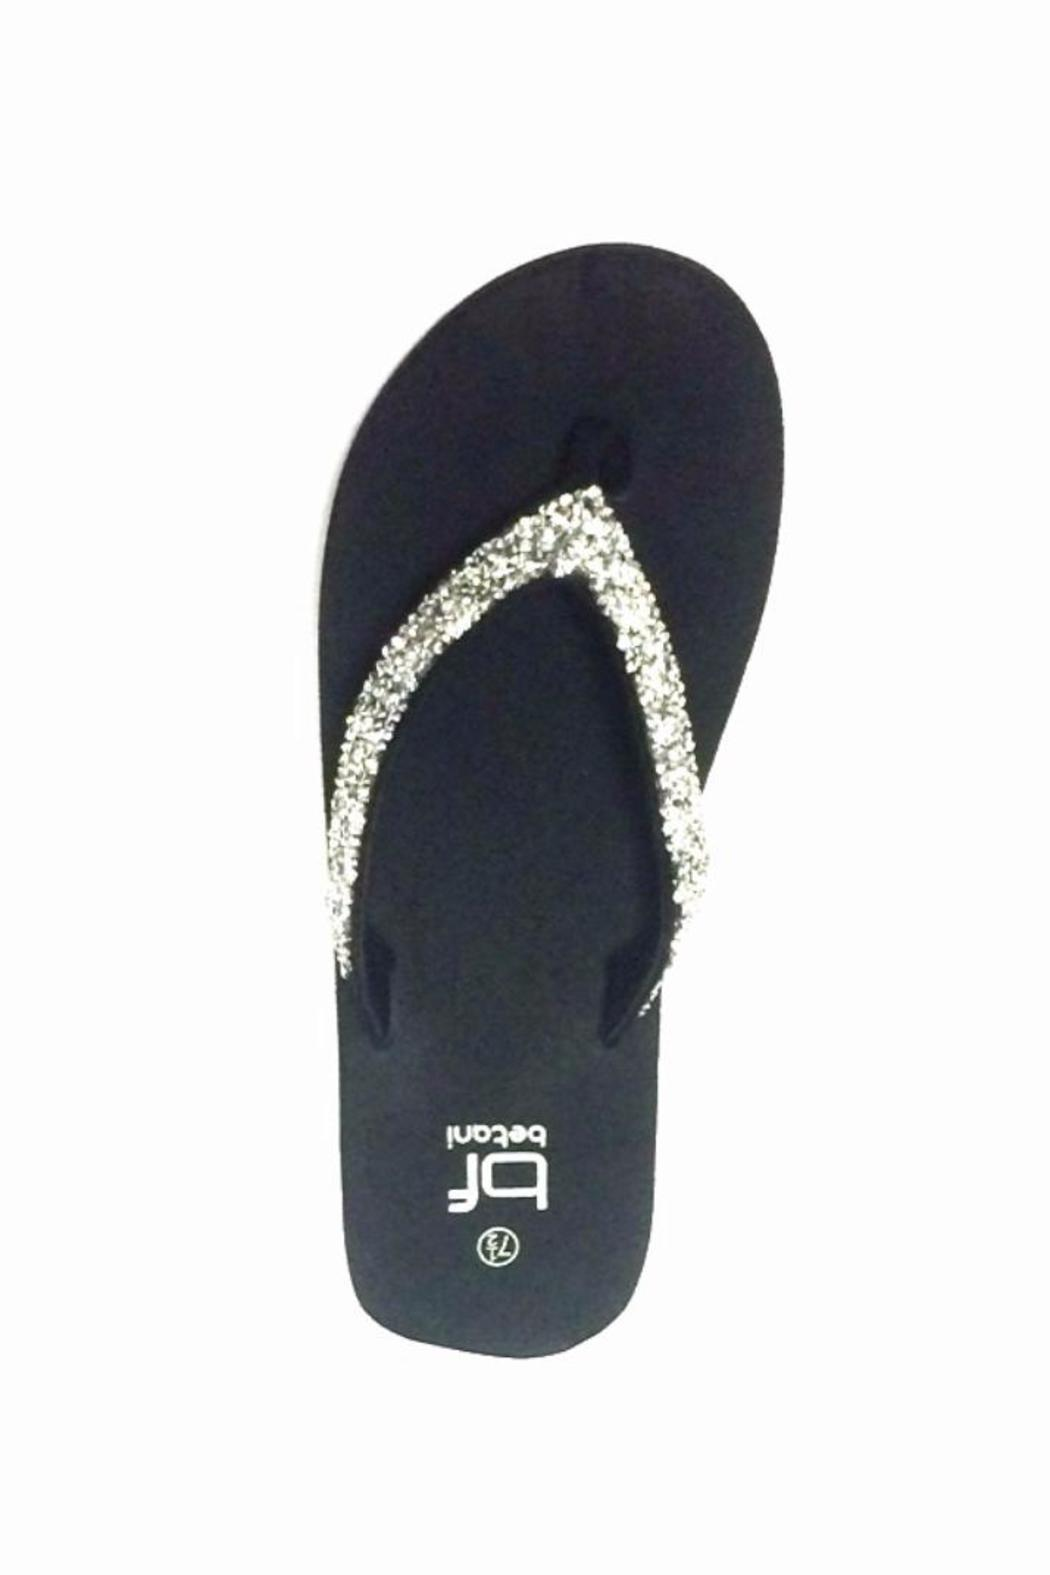 744f94376a8 BF BETANI Rhinestone Flip Flops from San Diego by BRANDED — Shoptiques